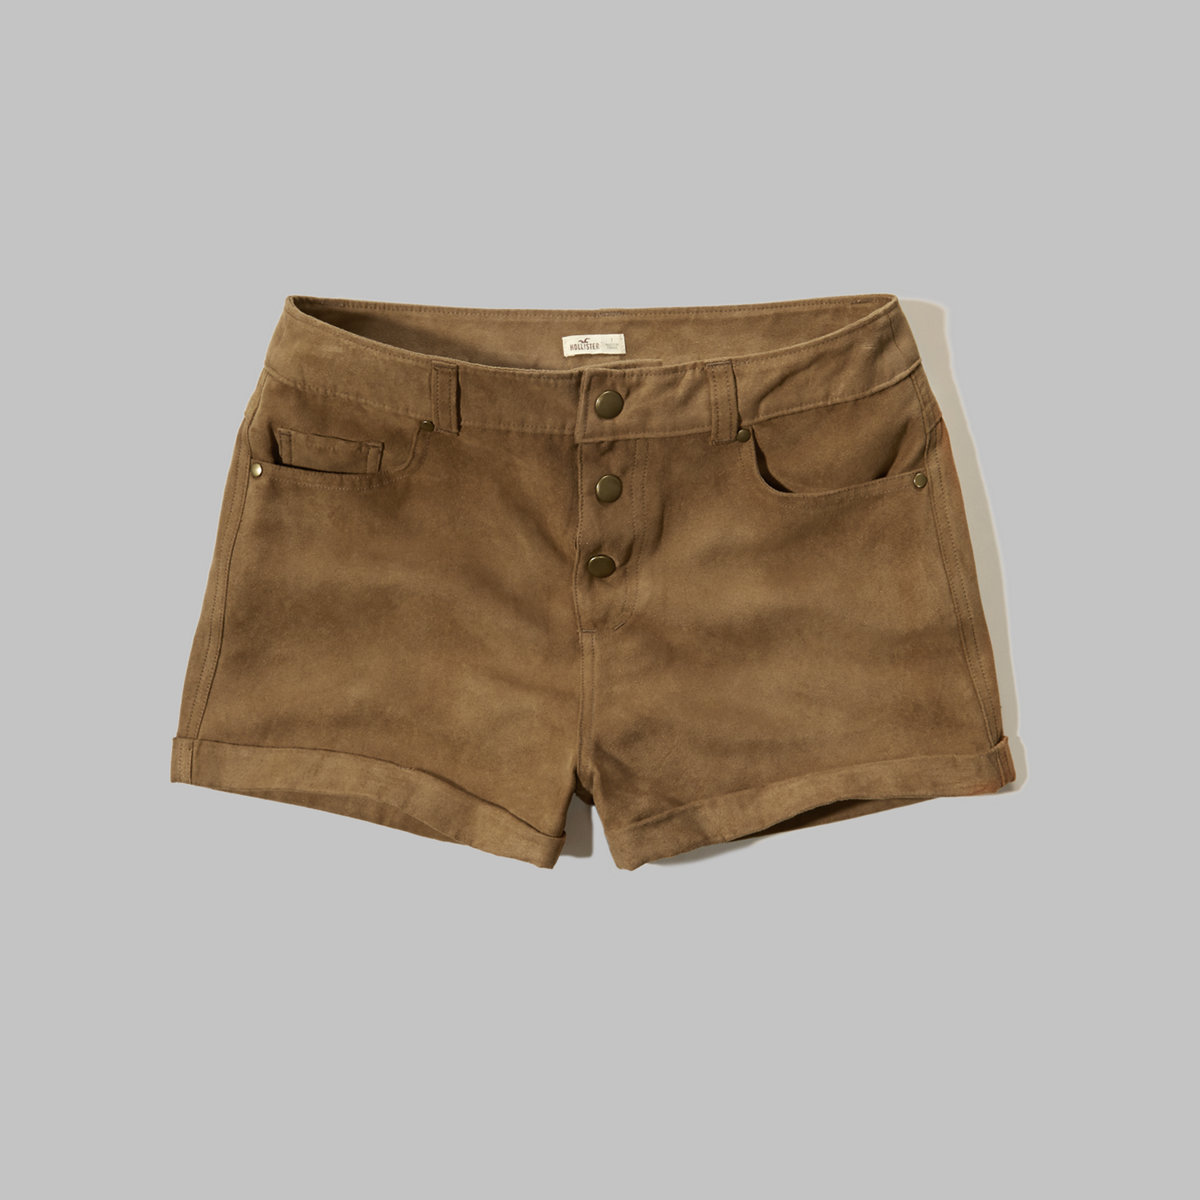 5 Pocket Suede Shorts